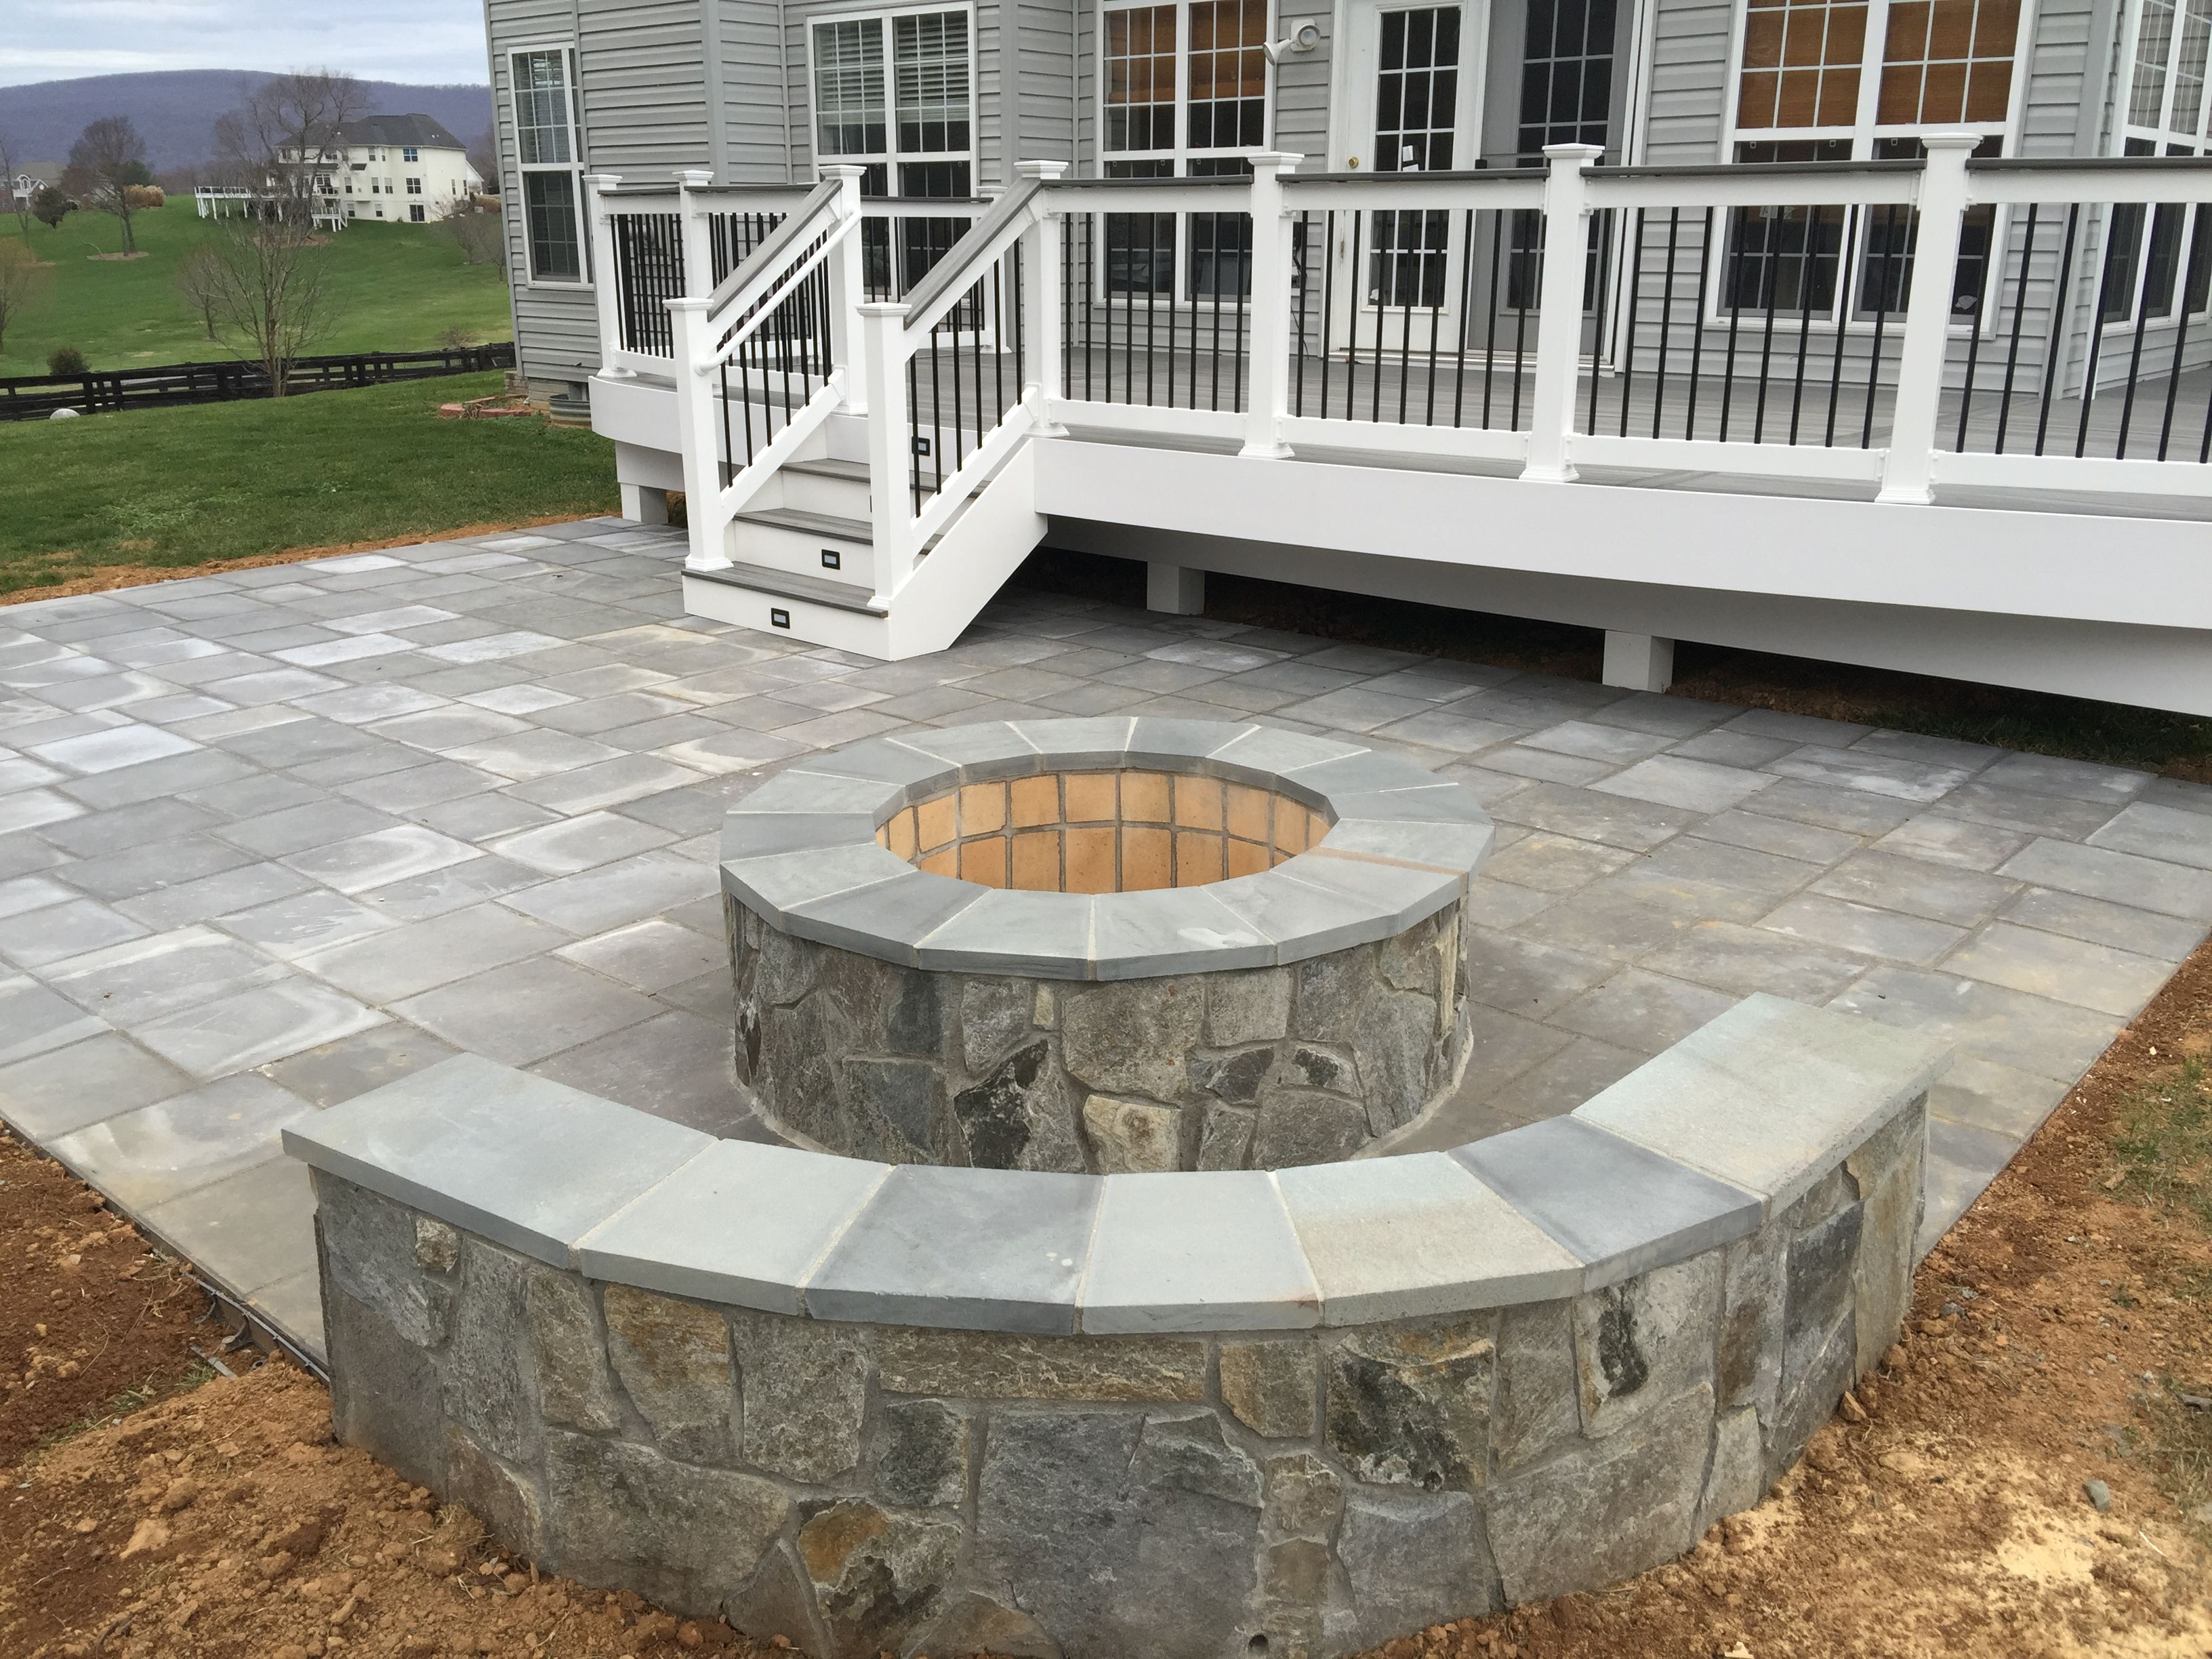 A beautiful paver patio with stone seating walls and a for Decks and patios design ideas